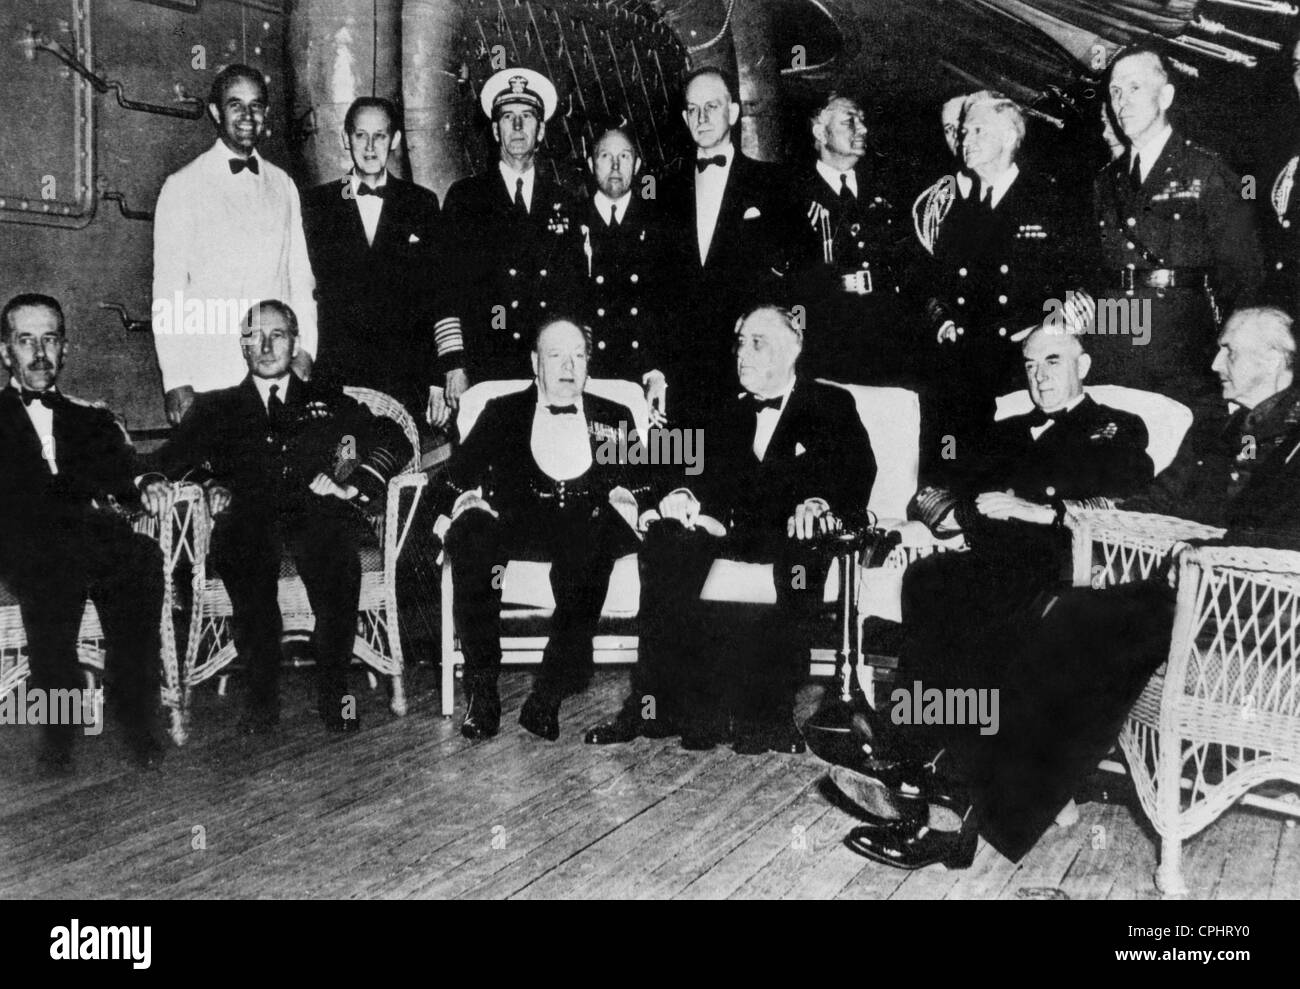 General george c marshall quotes - Group Portrait Showing Winston Churchill Franklin D Roosevelt And General George C